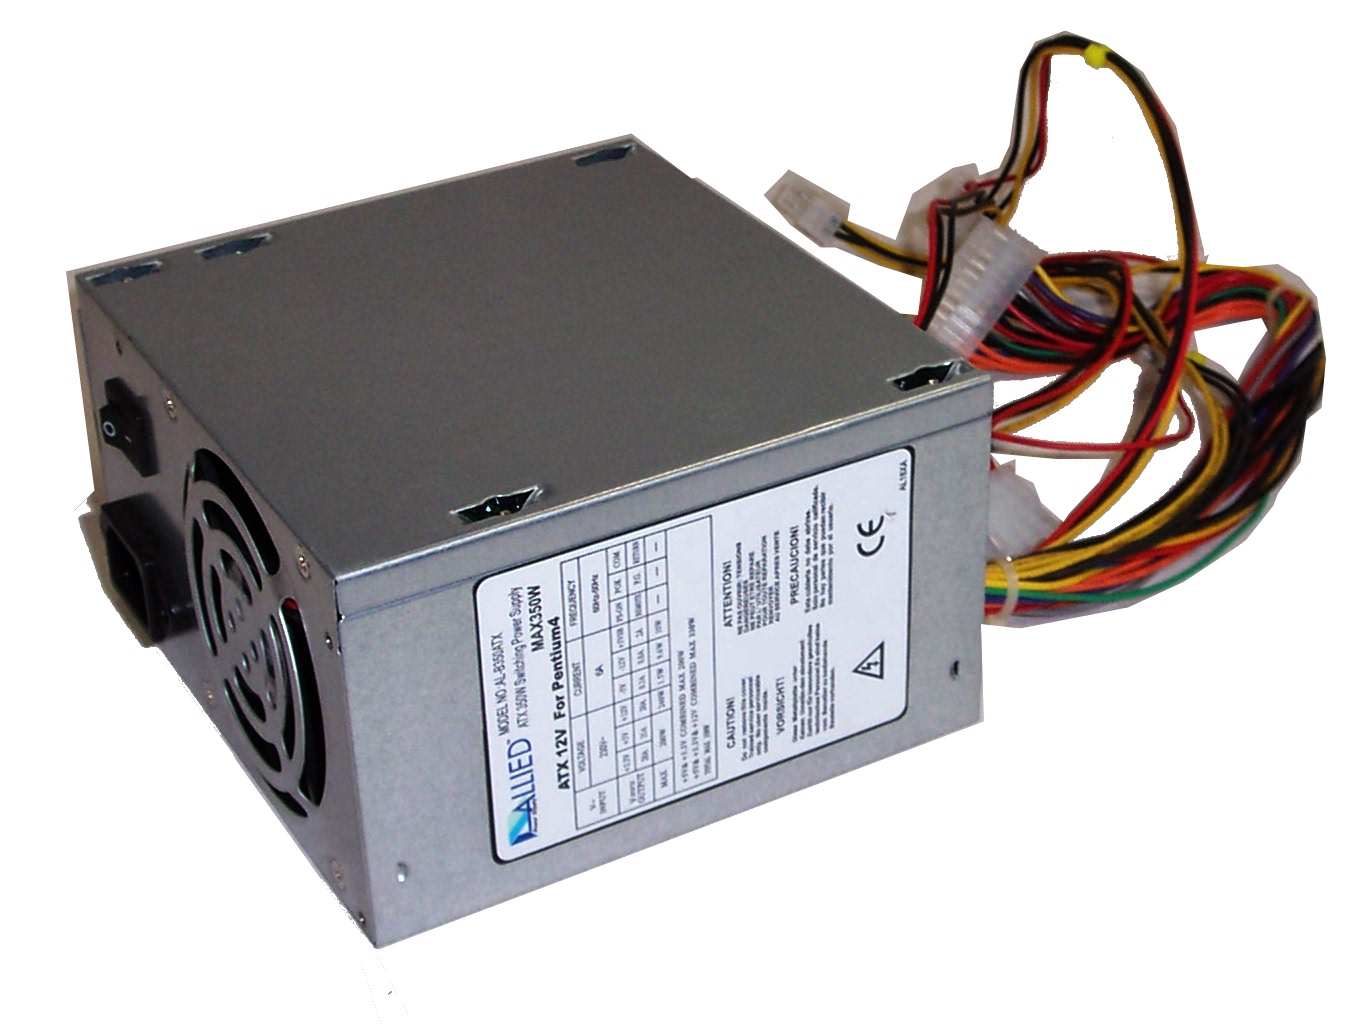 Allied al a400atx power supply - Can imitrex be taken with hydrocodone